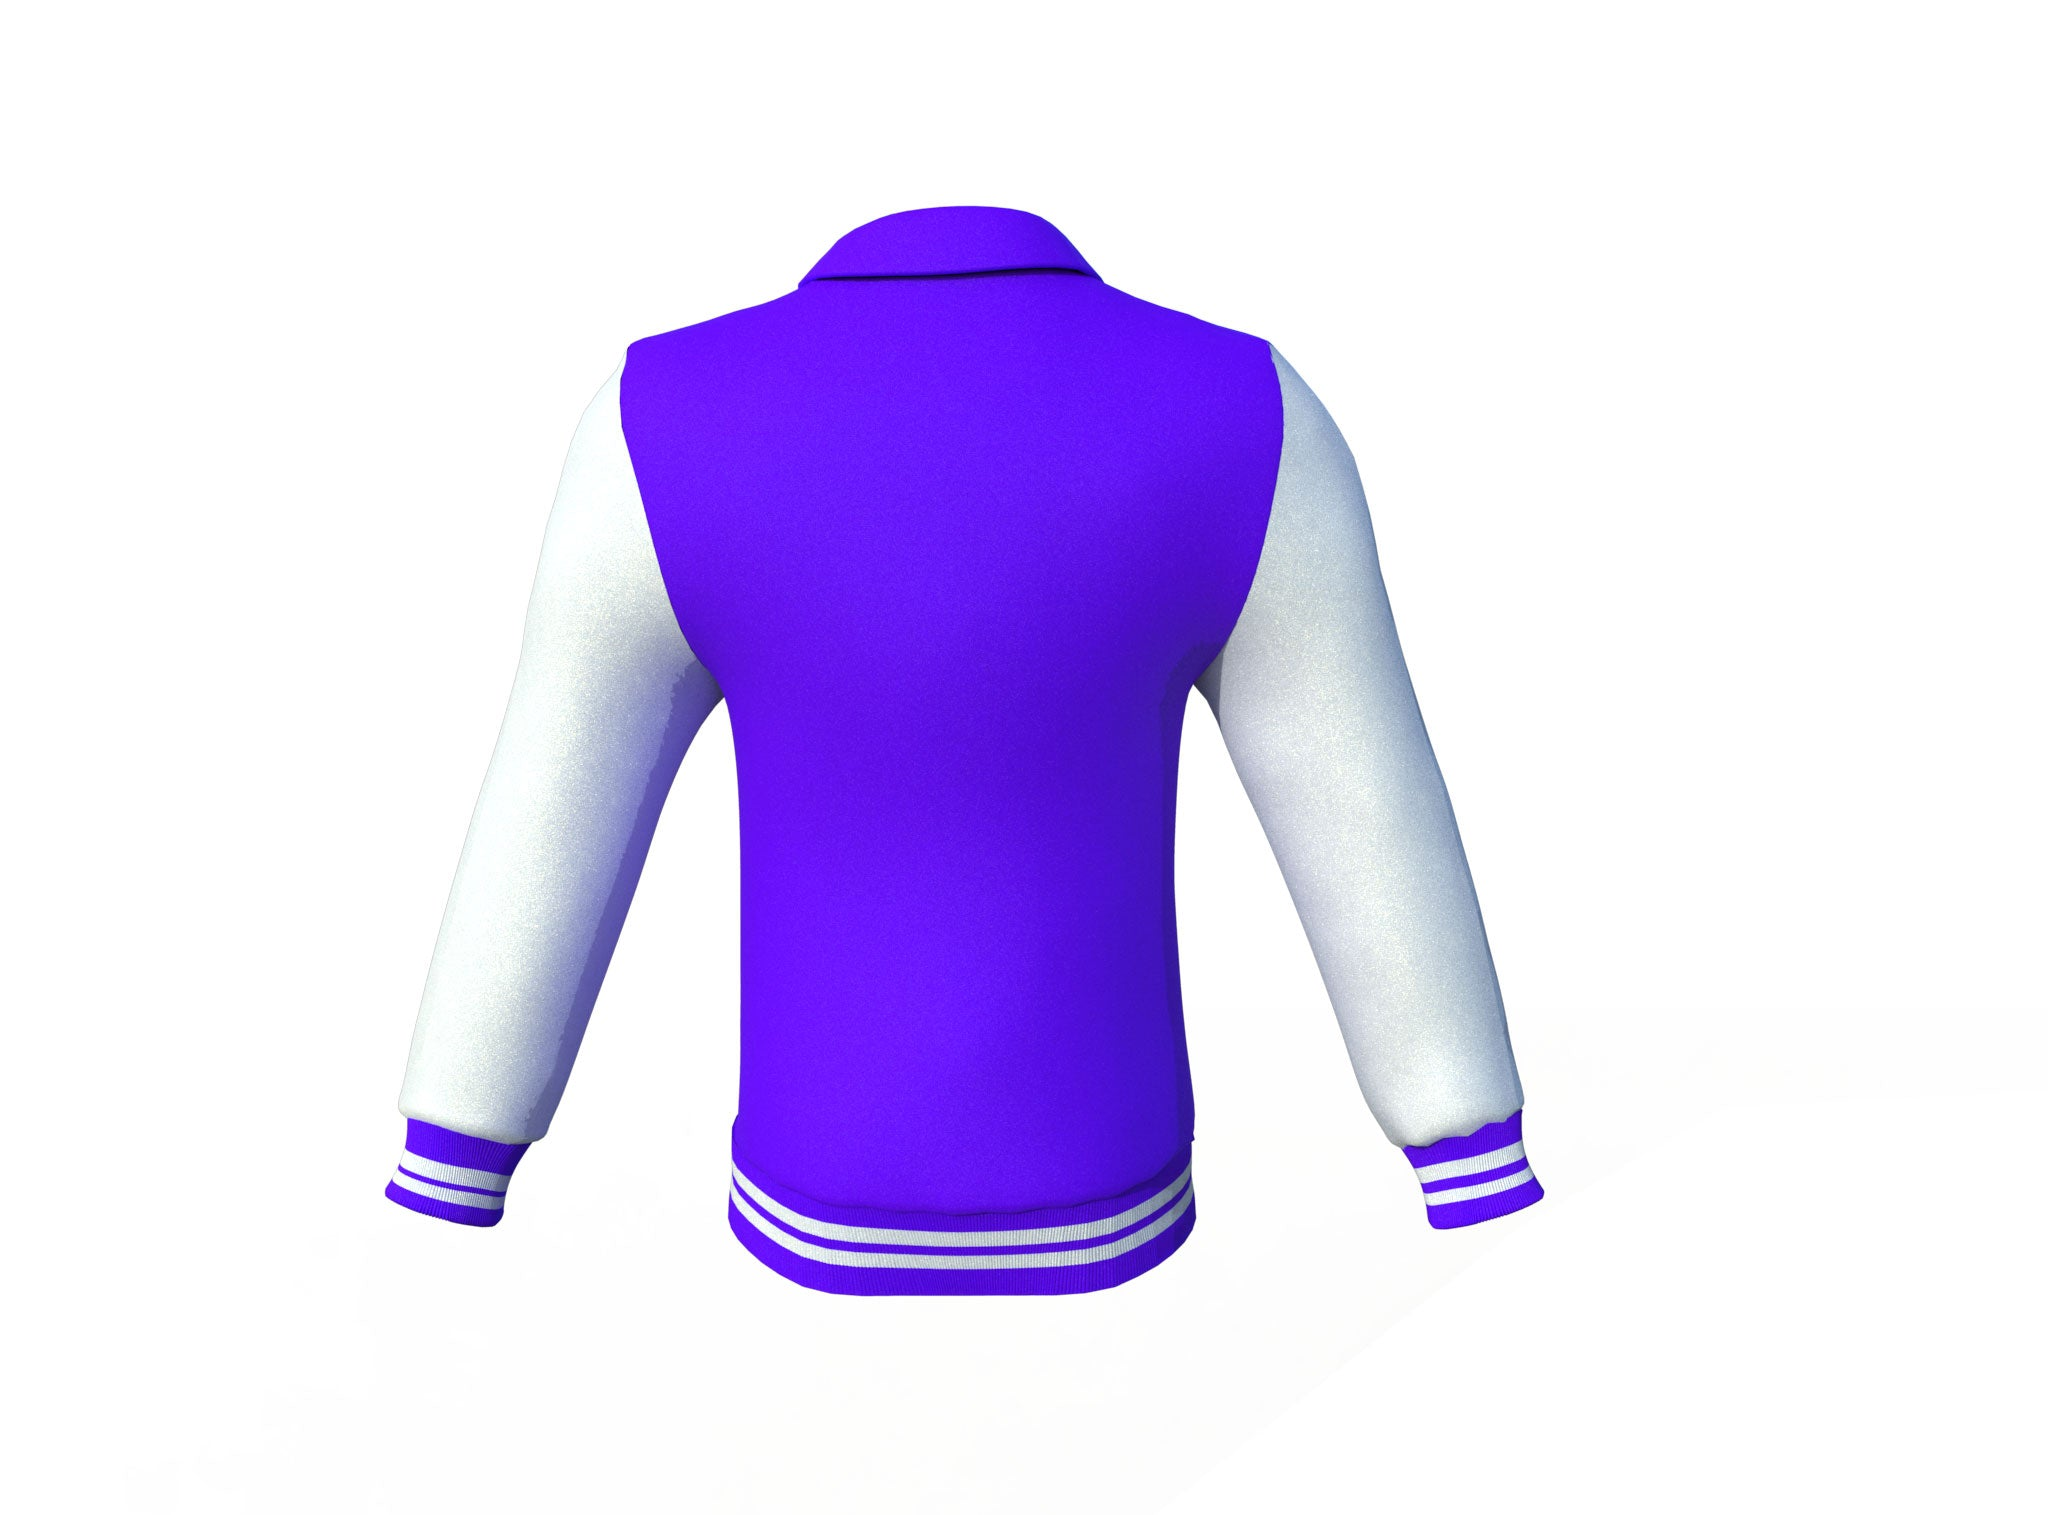 Purple Varsity Letterman Jacket with White Sleeves